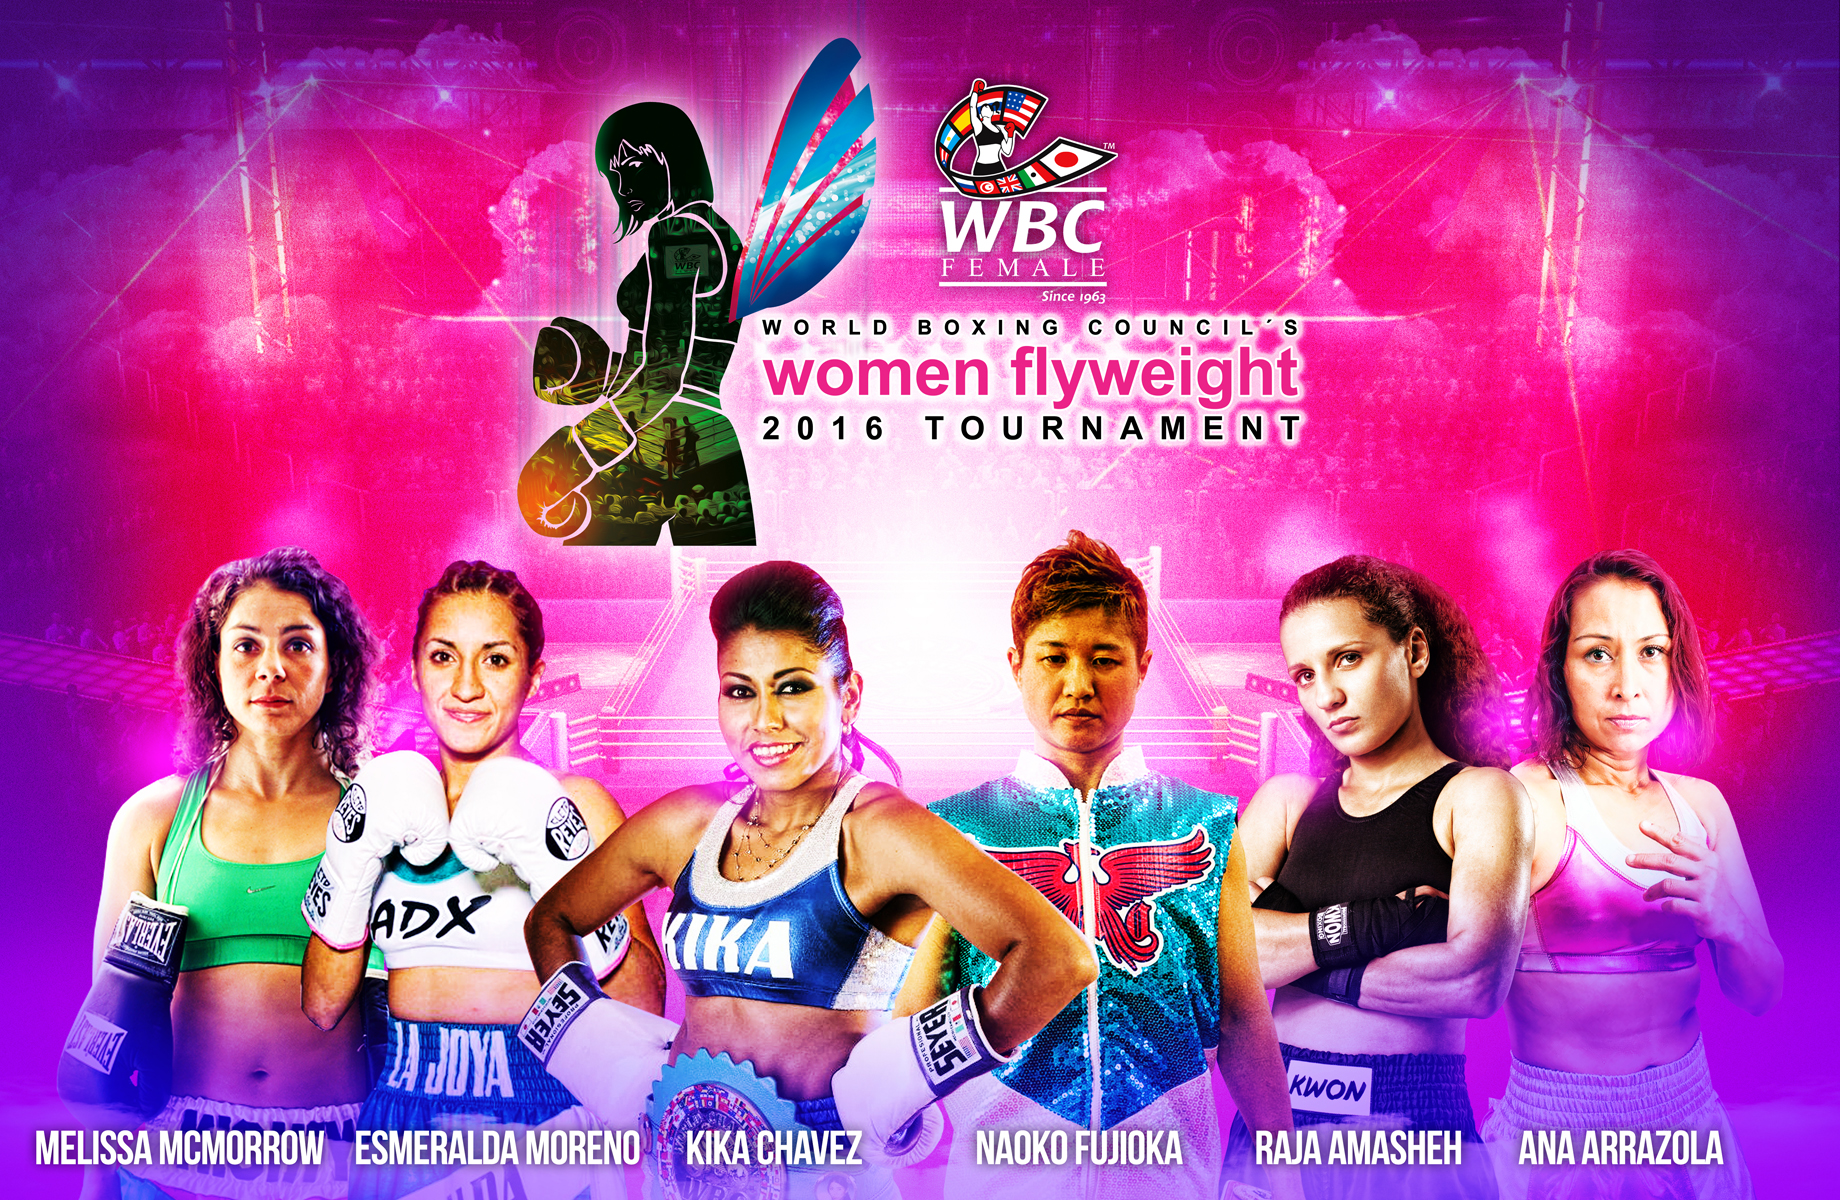 wbc-female-logo